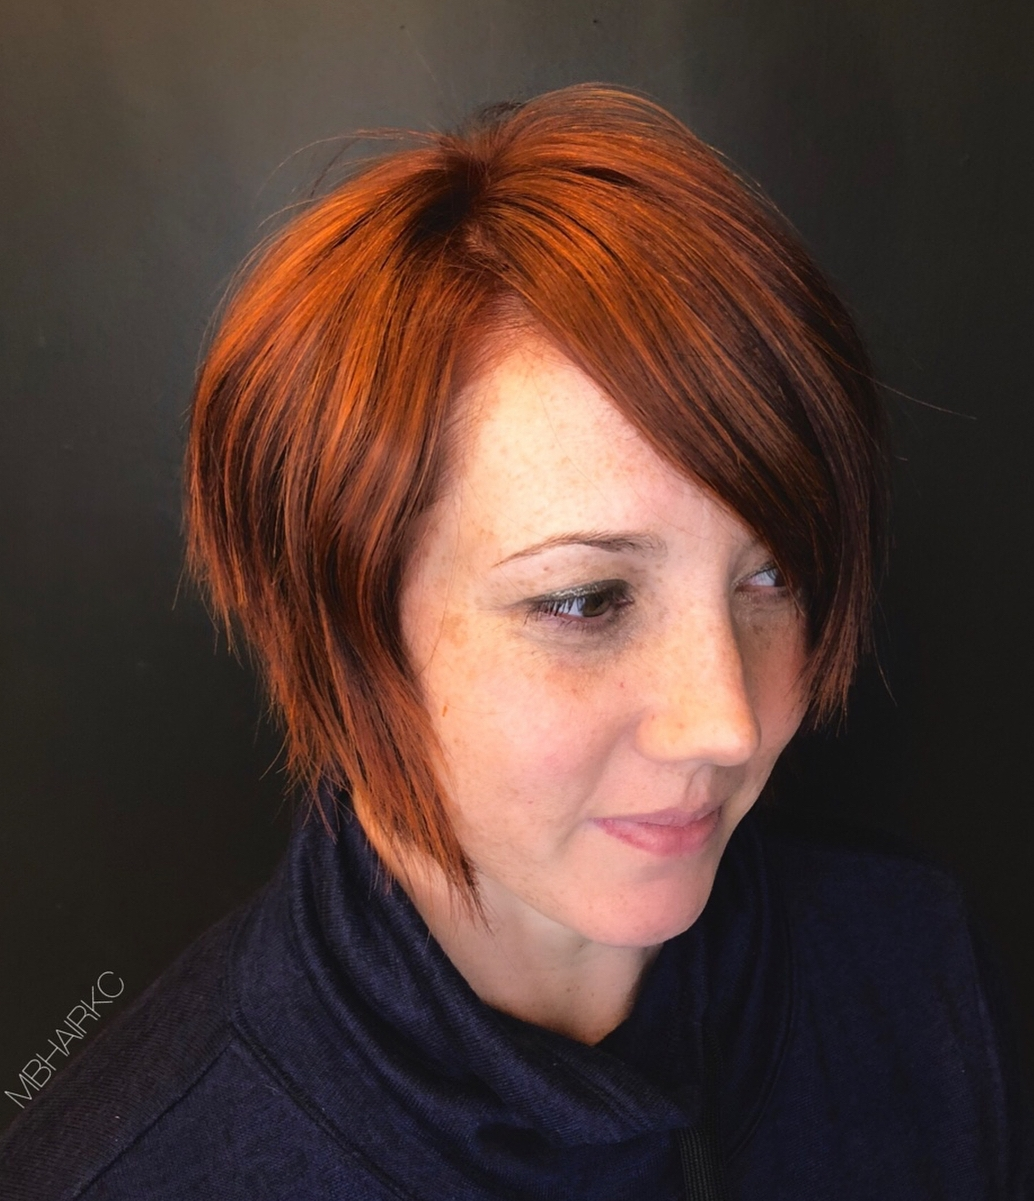 Short Bob for a Round Face